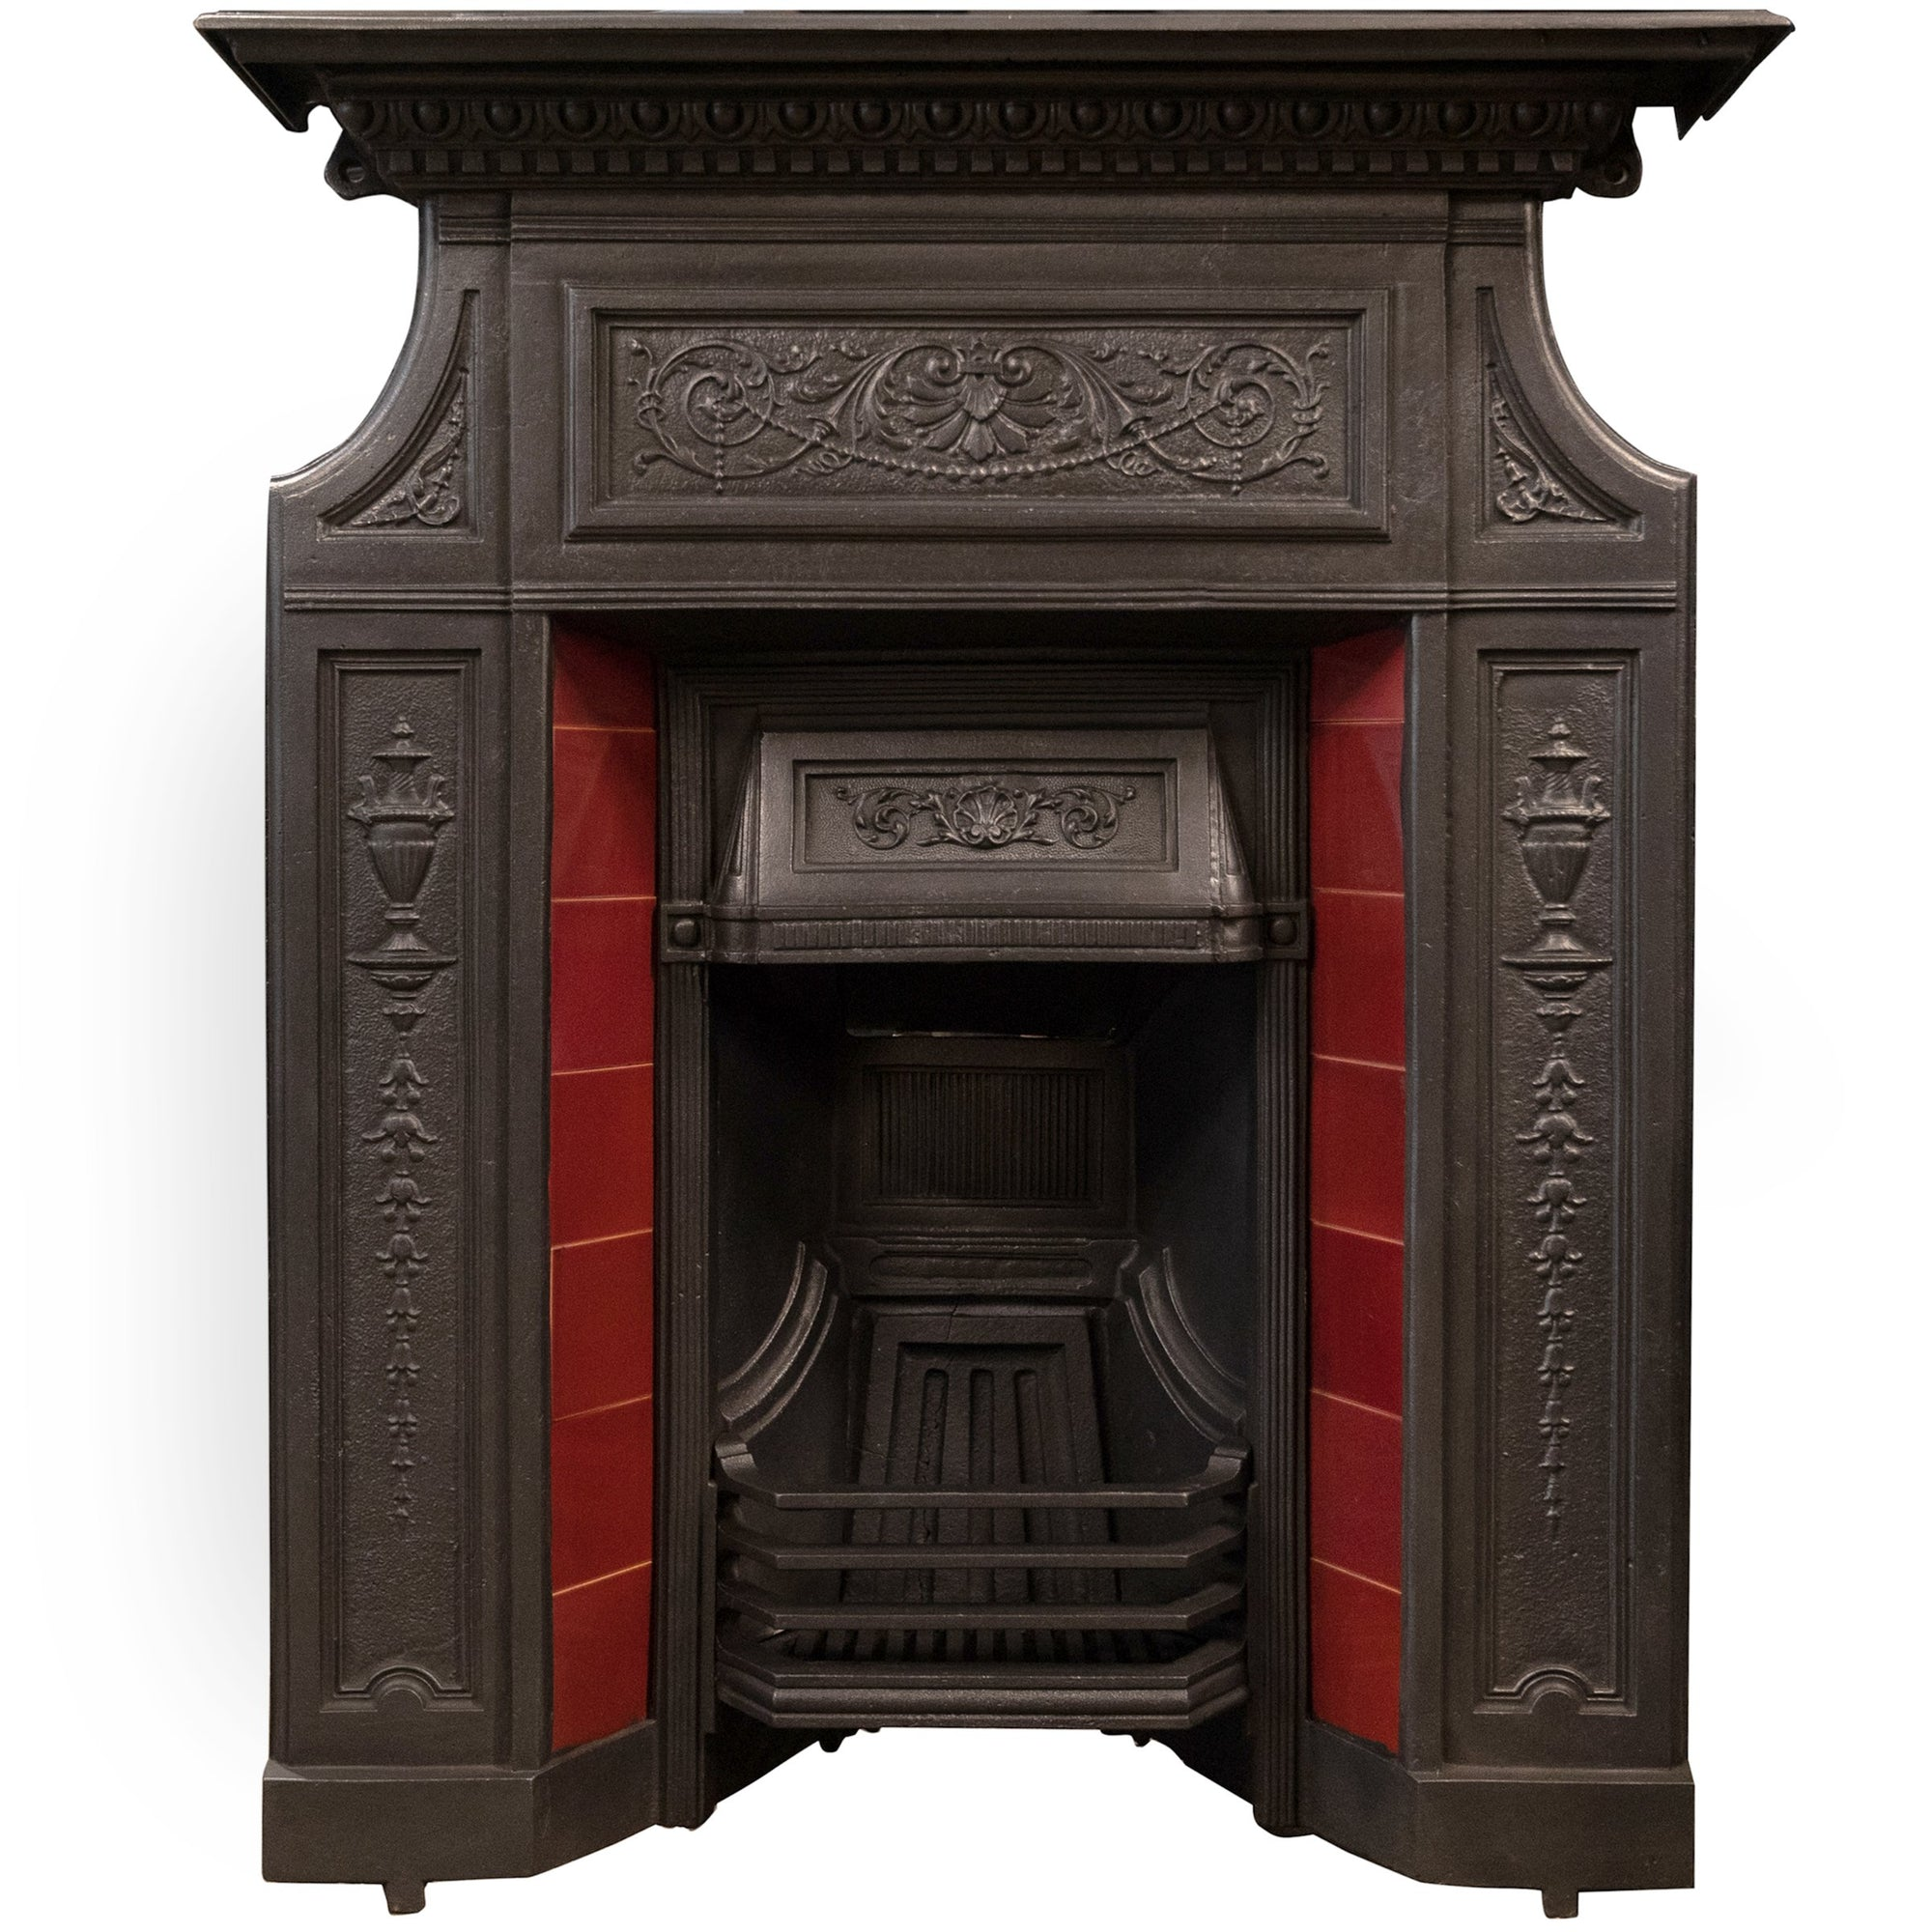 Antique Edwardian Cast Iron Combination Fireplace with Red Tiles